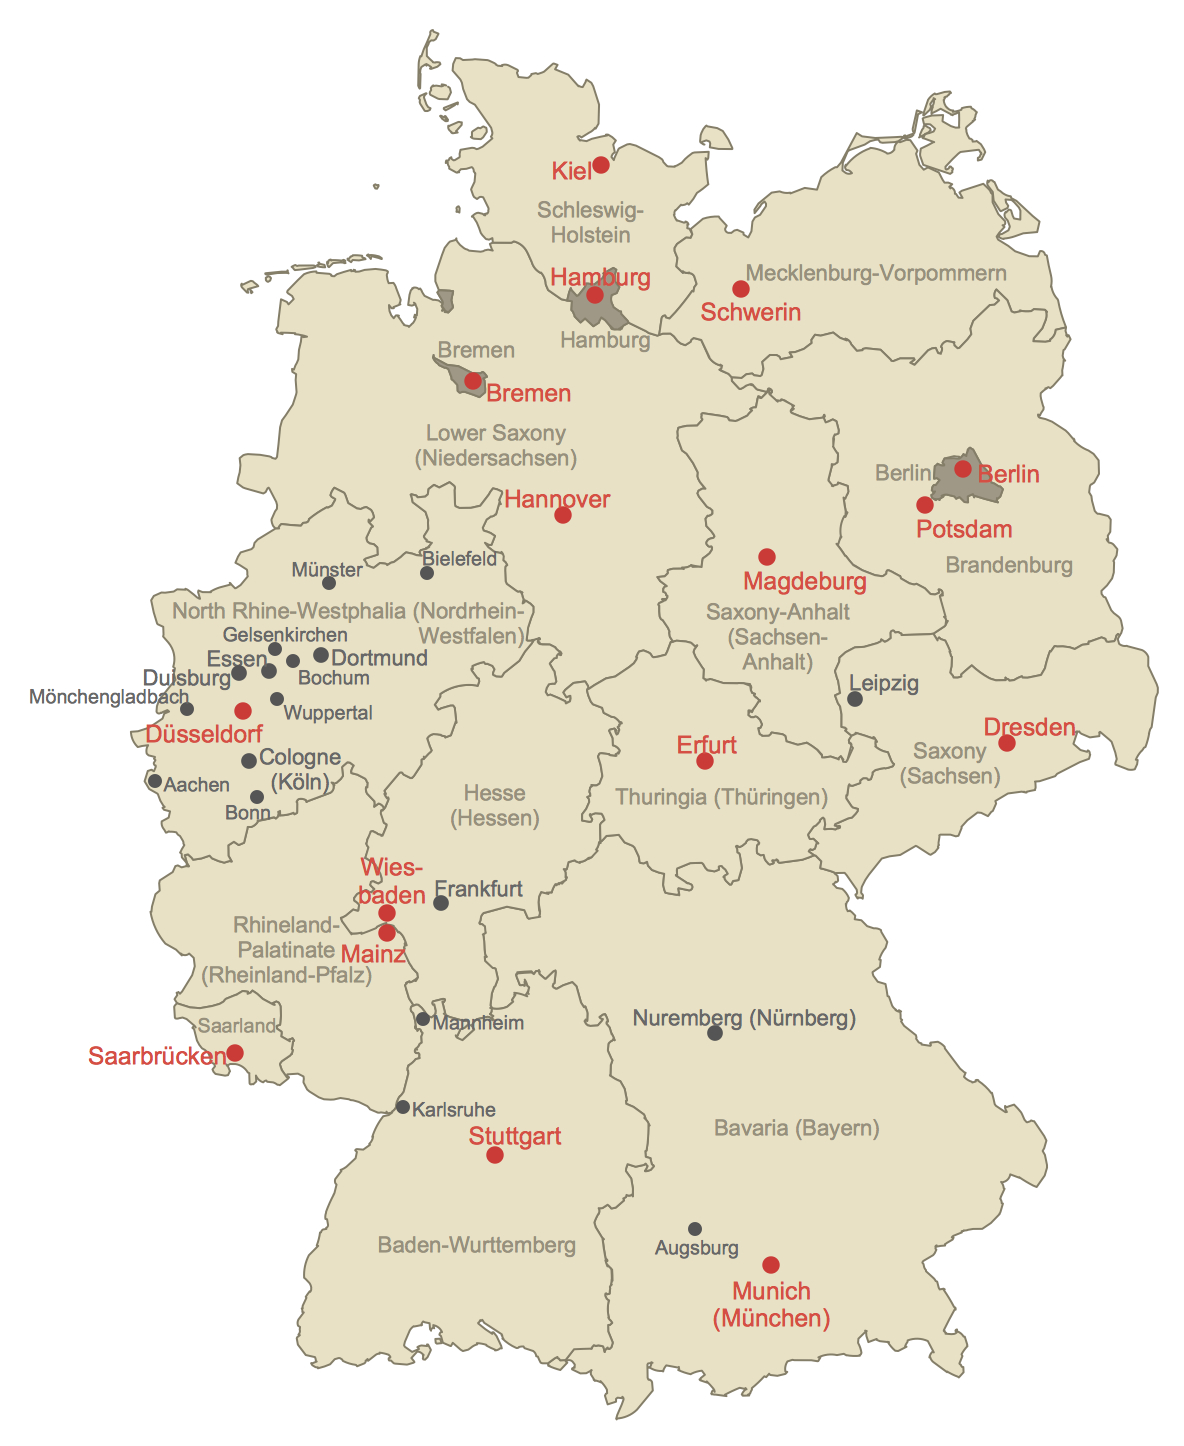 How To Create A Map Of Germany Using Conceptdraw Pro | Germany Map - How To Create A Printable Map